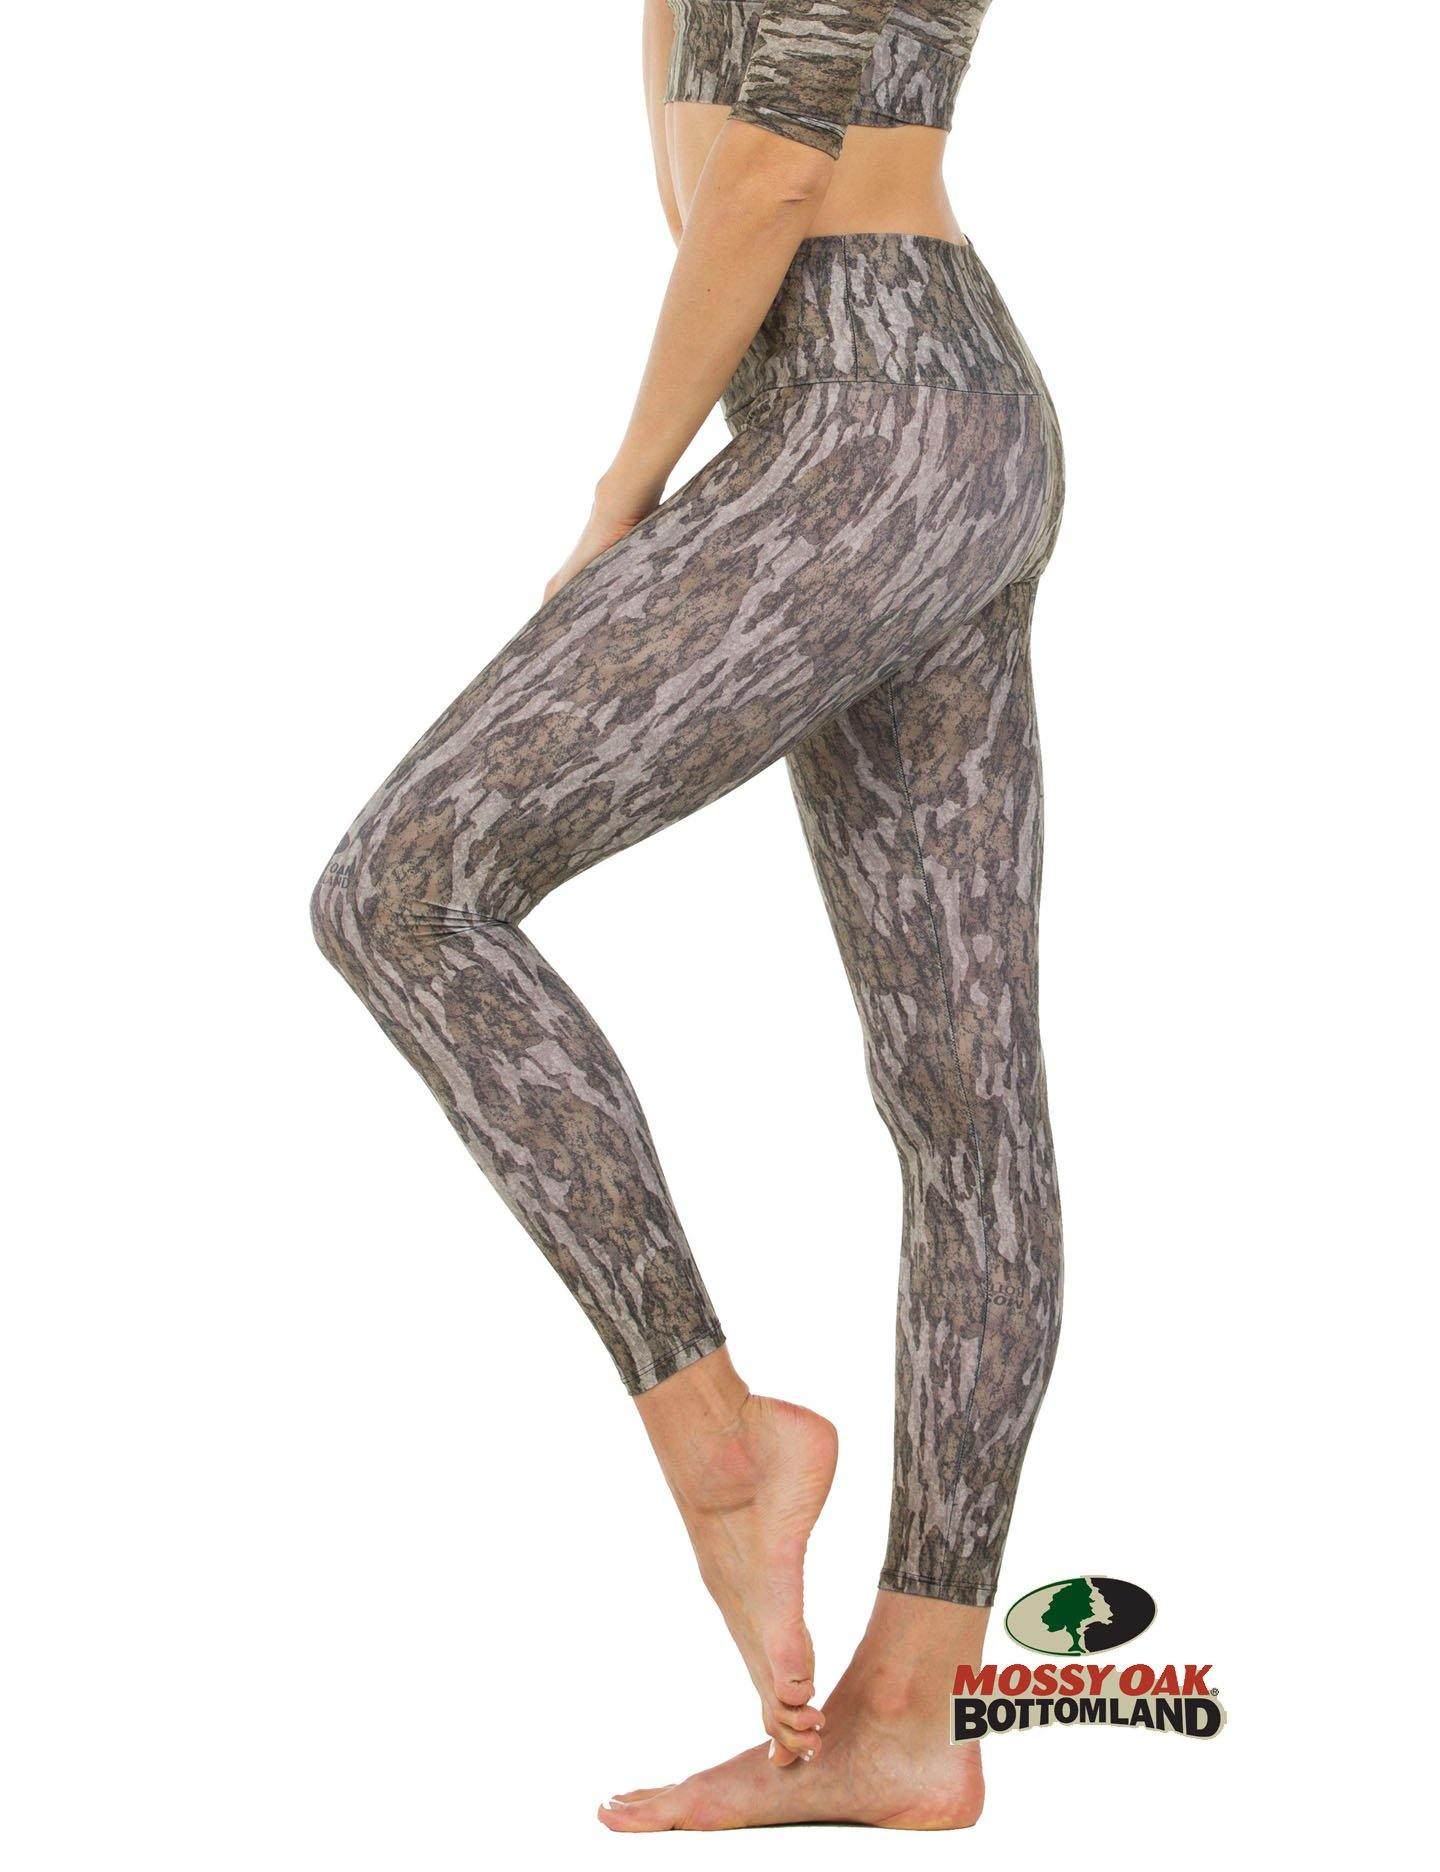 Apsara Leggings High Waist Full Length, Mossy Oak Bottomland